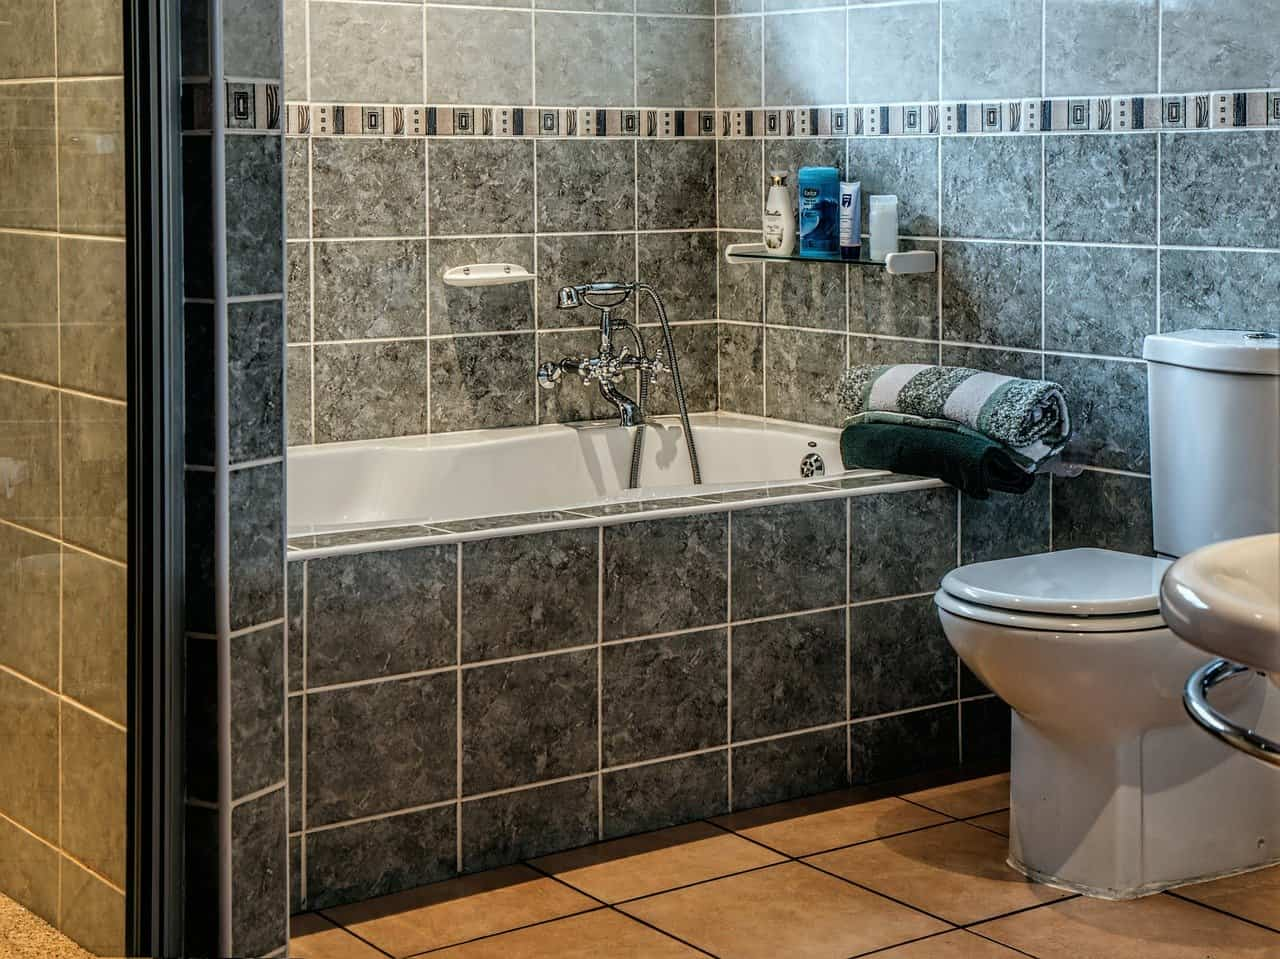 How To Remove And Prevent Mould From Grout Lines